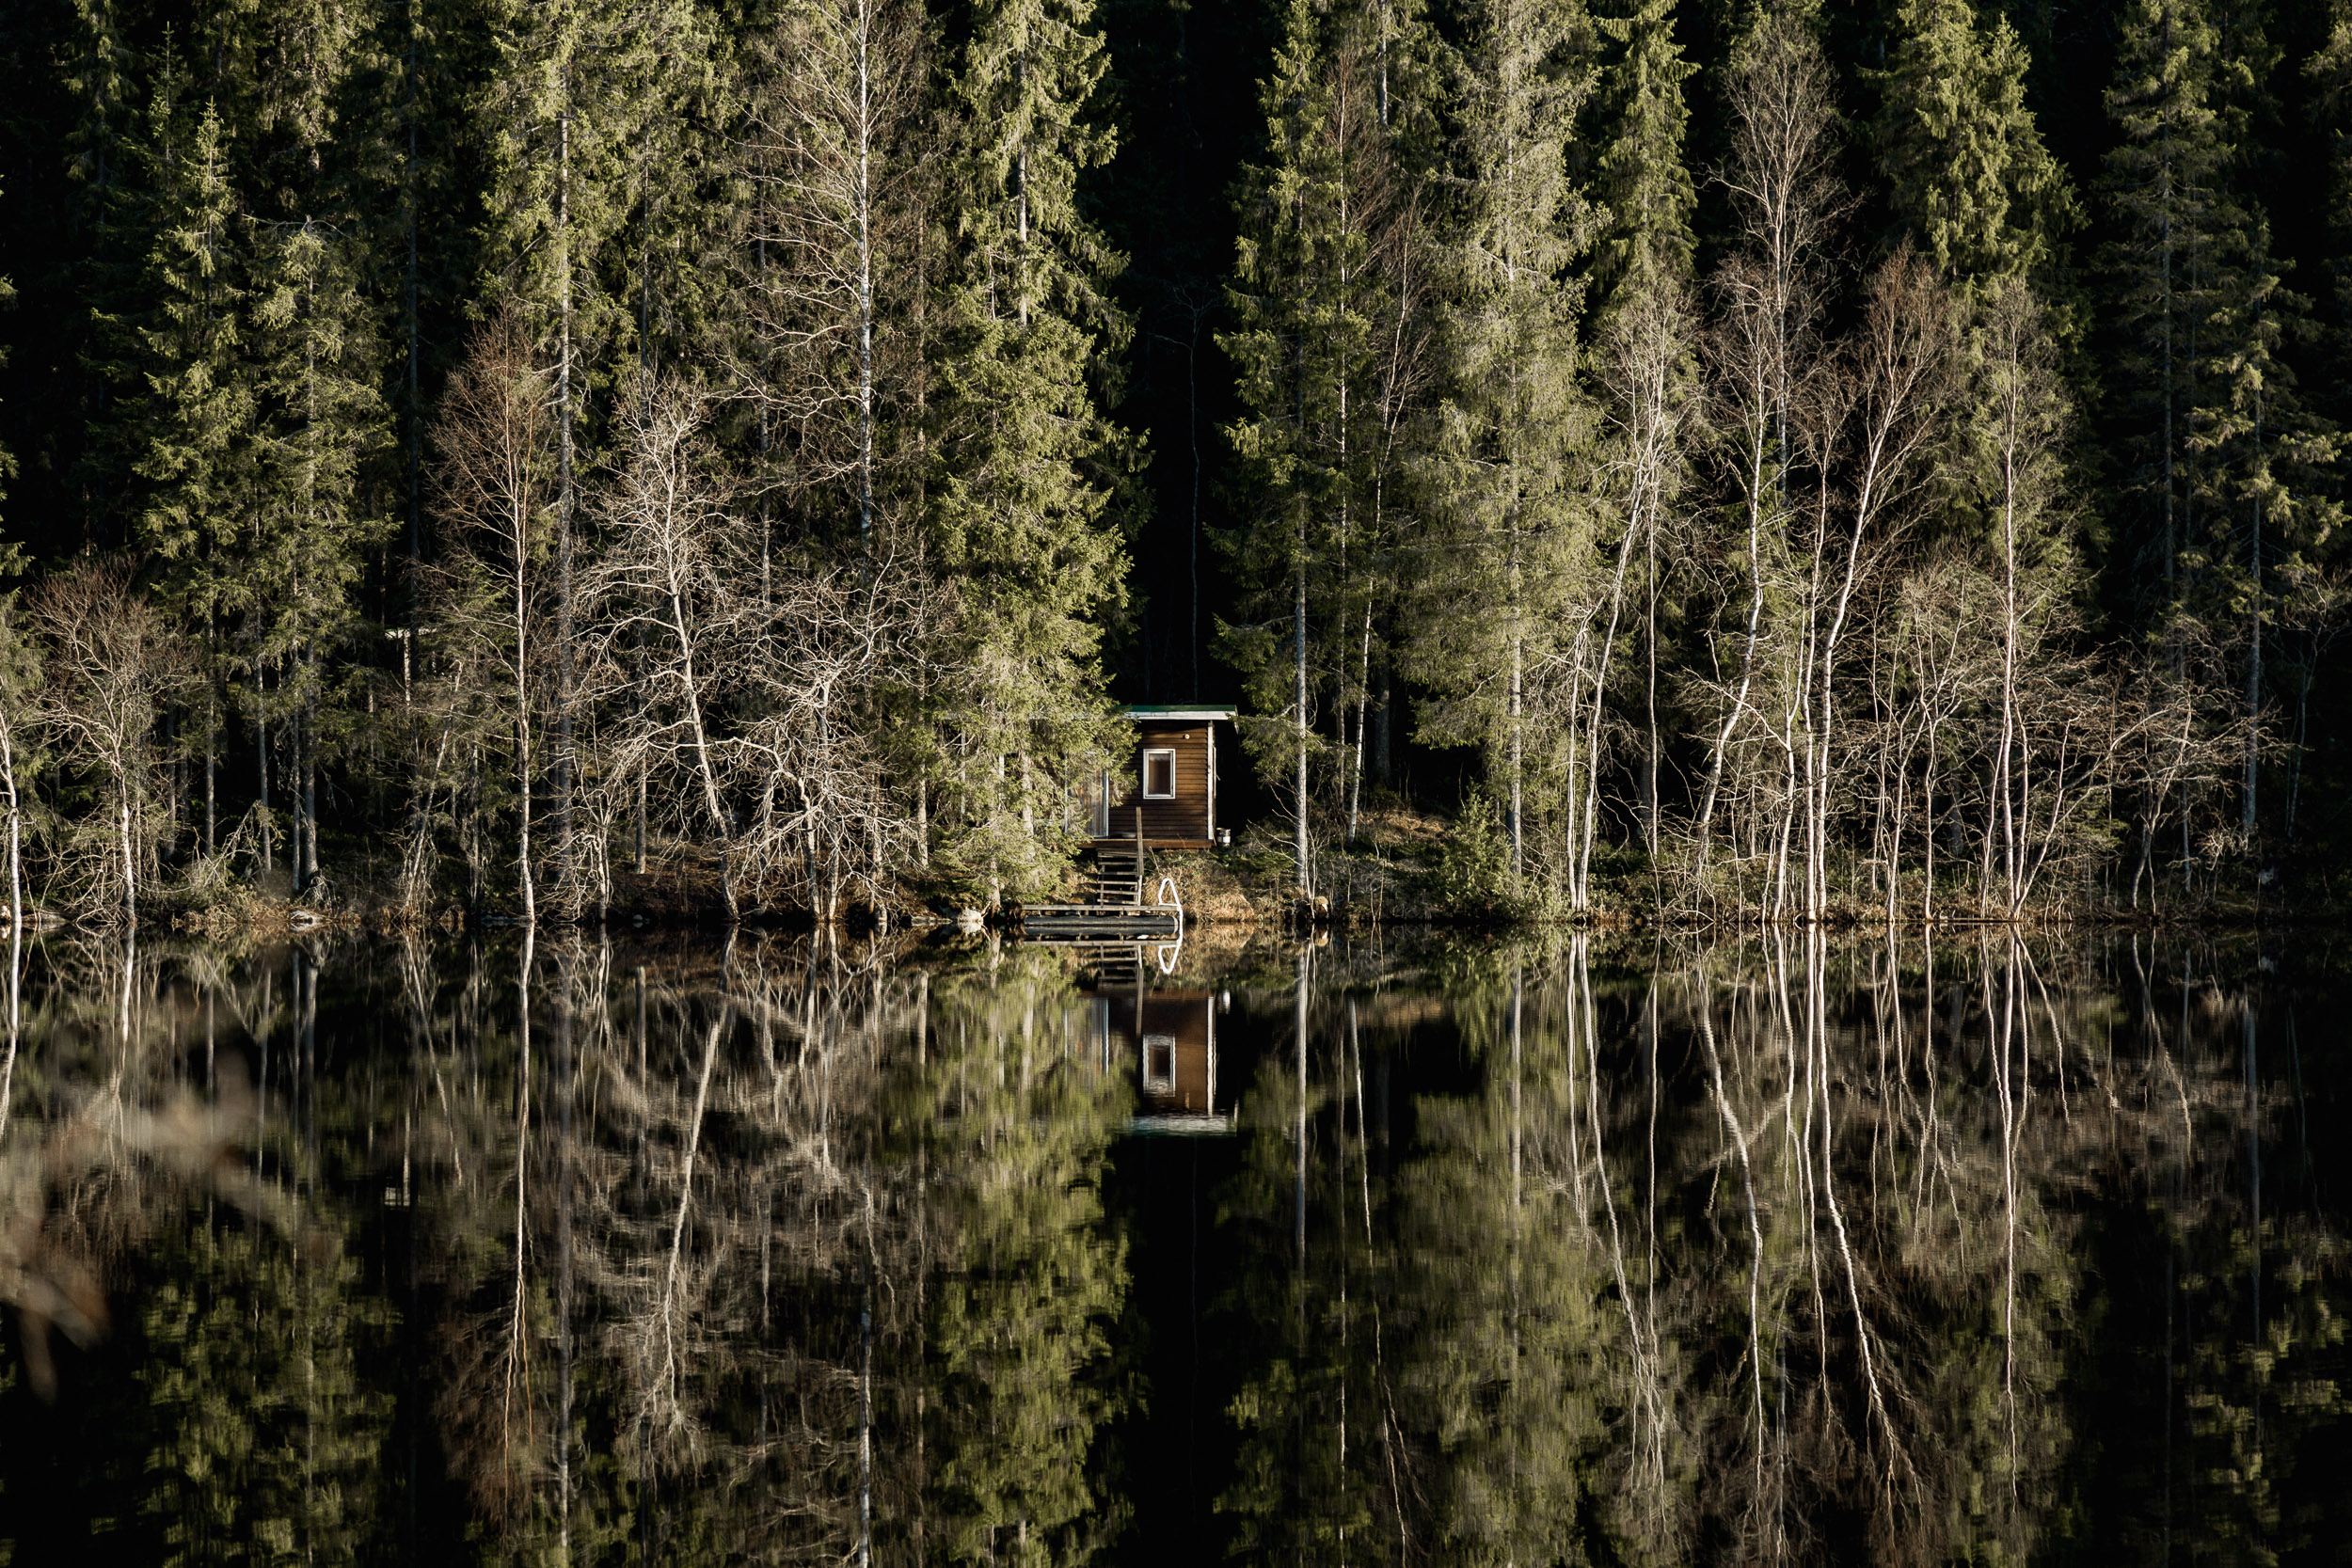 11-cabin-cottage-hideout-reflection-forest-anna-elina-lahti-photographer.jpg